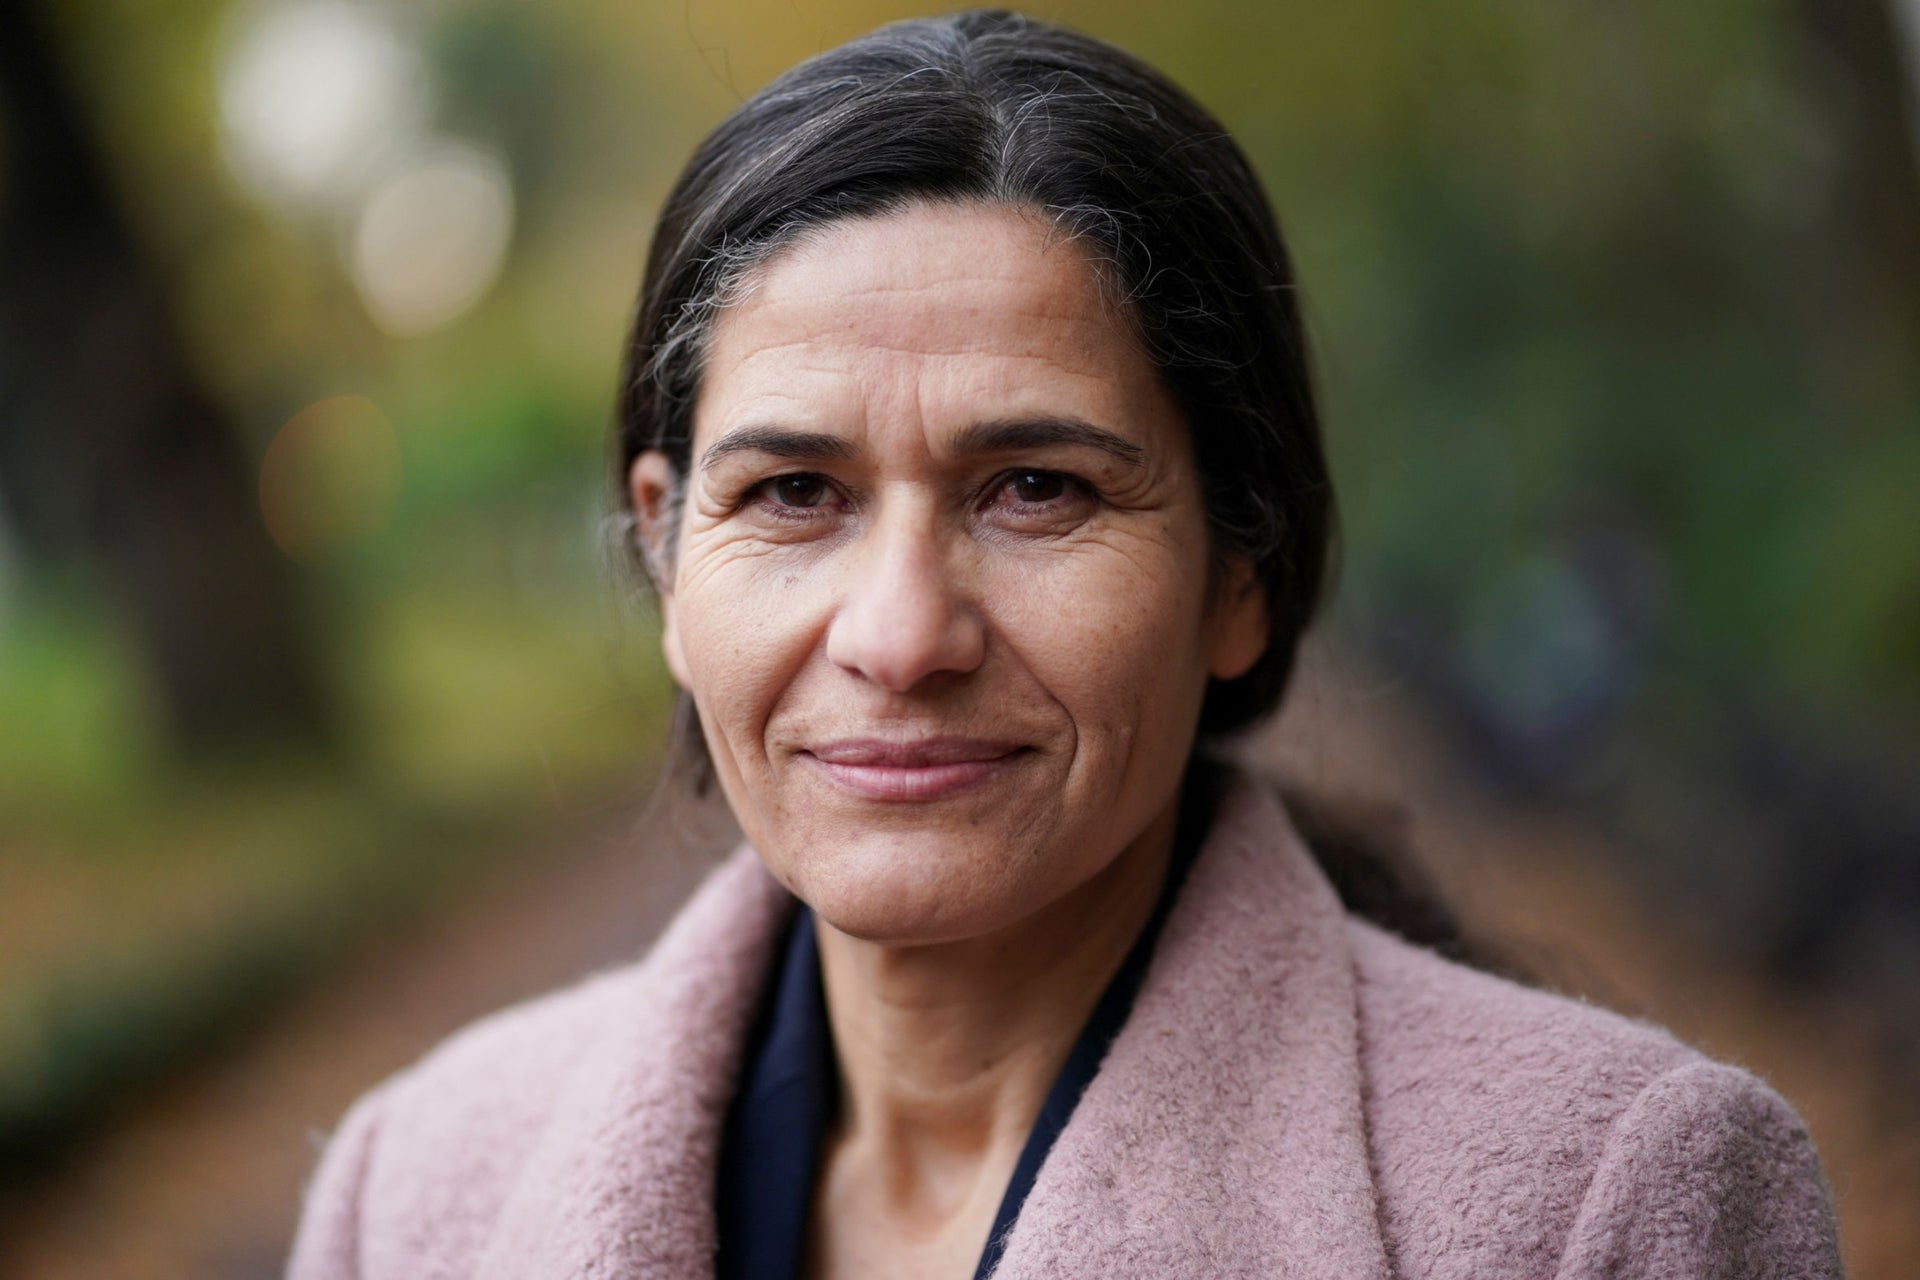 Kurdish official Ilham Ahmed, a co-chair of the Syrian Democratic Council, photographed in London, November 2019.